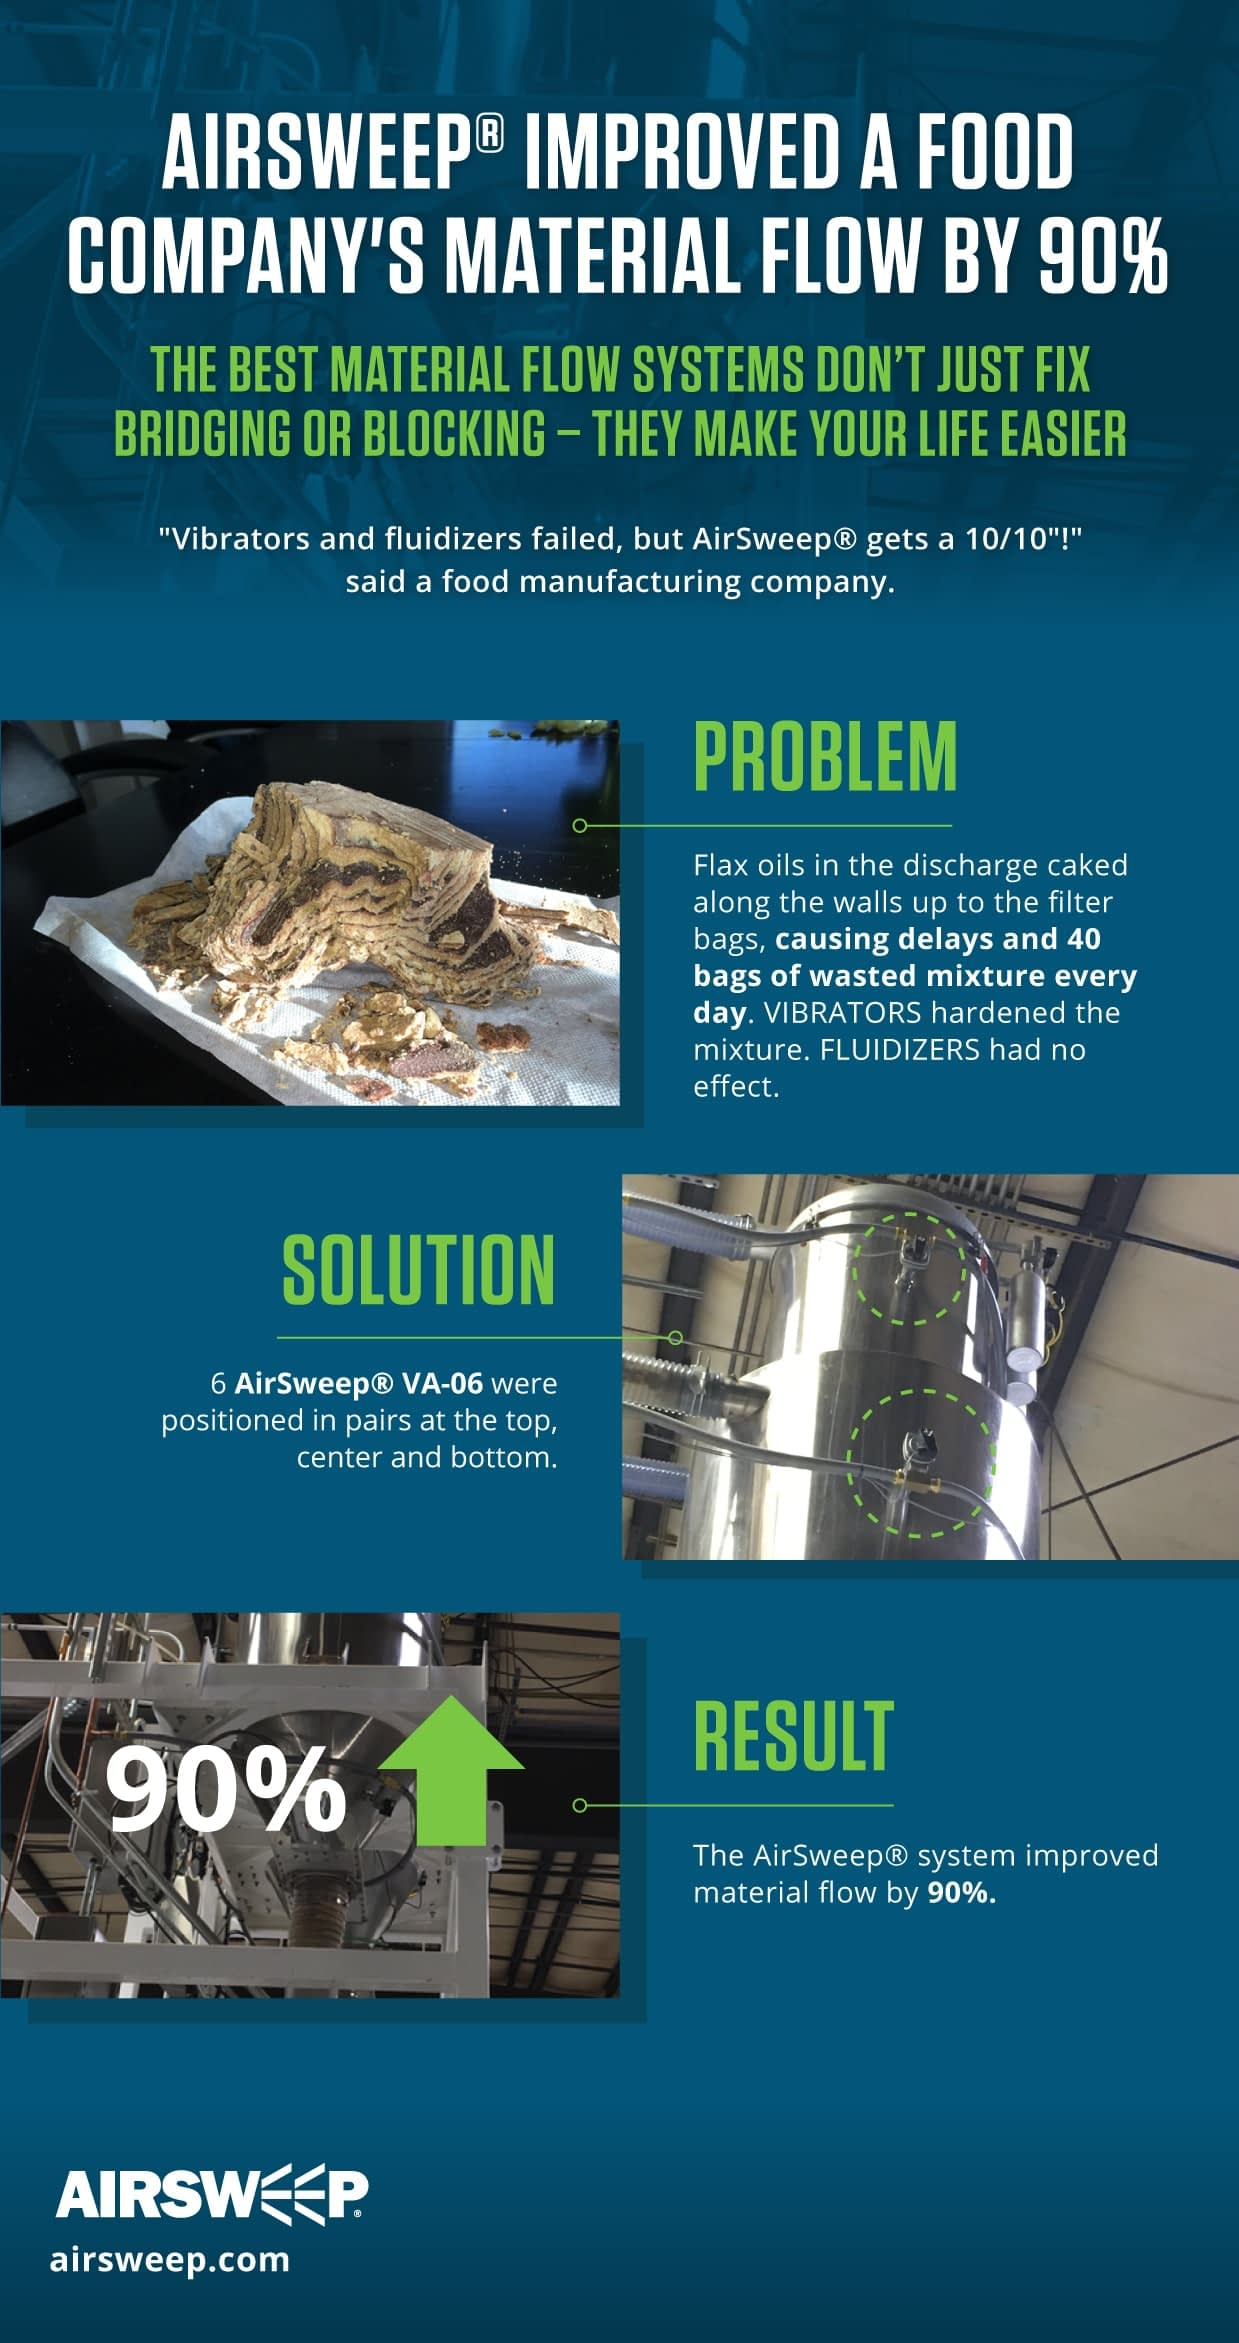 Flax4Life, a commercial bakery, improved its material flow by 90% after it installed AirSweeps - reducing wastage and increasing production speed.